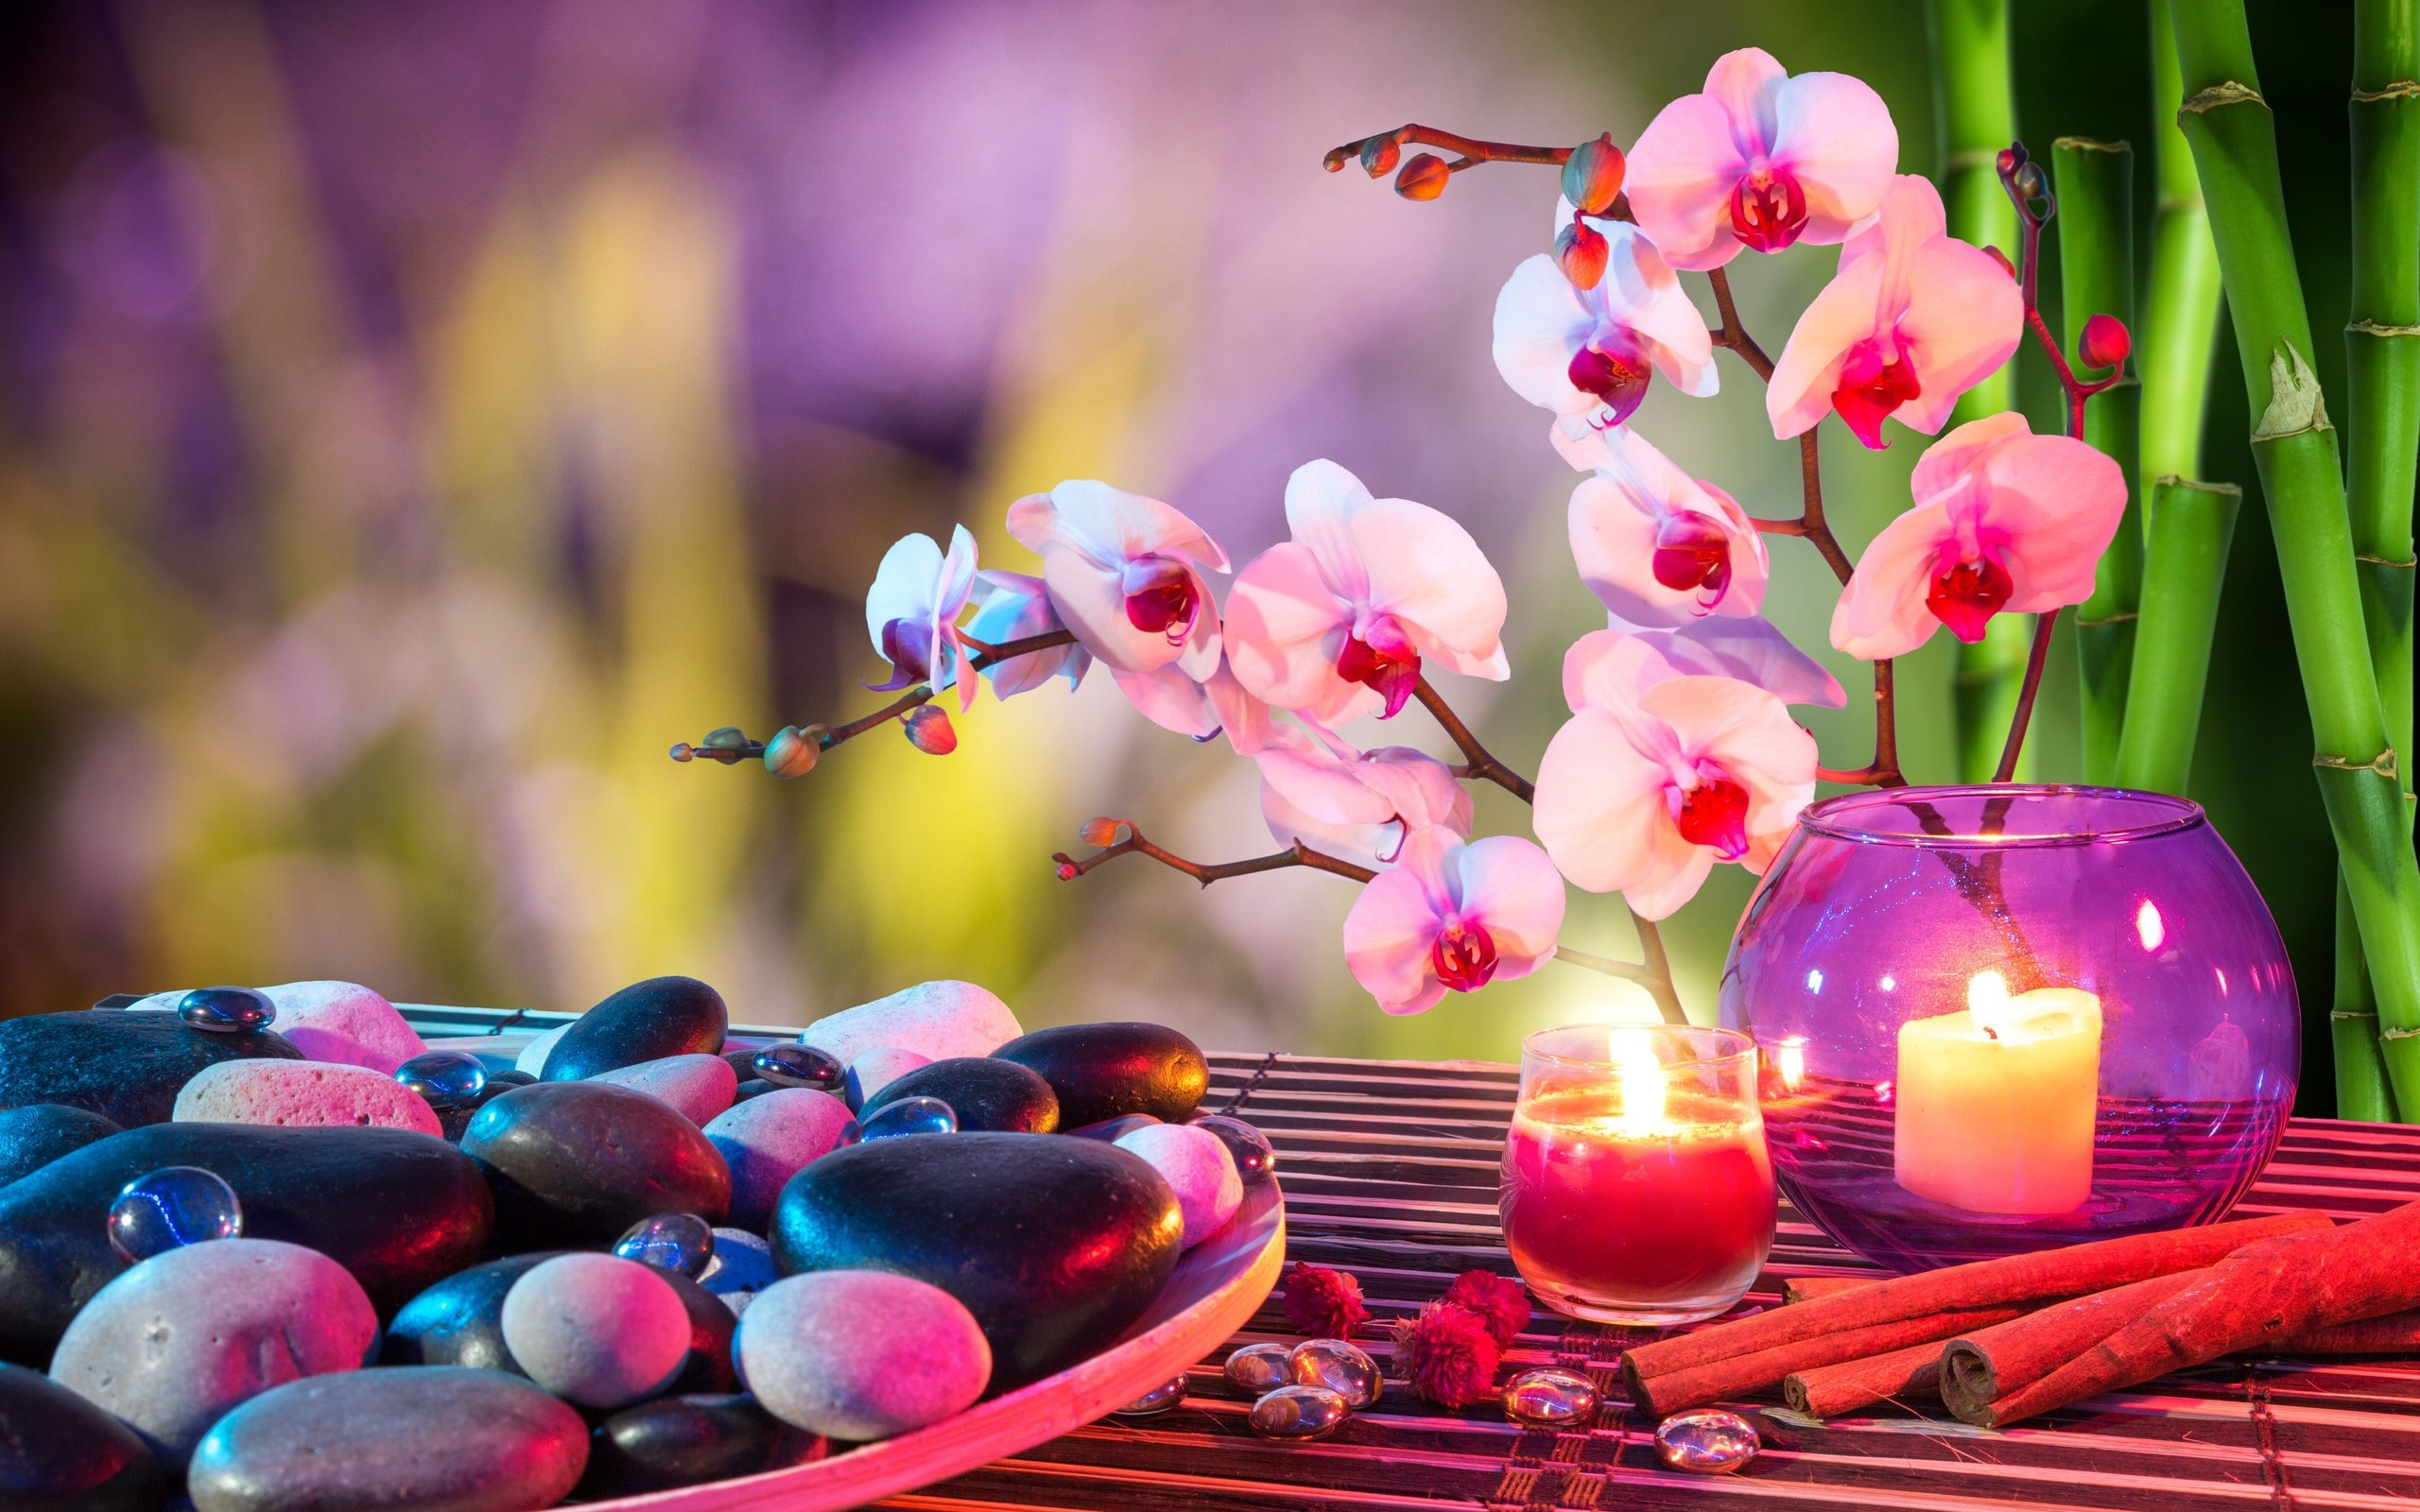 candles wallpapers | WallpaperUP for Heart Candle Wallpaper  58lpg